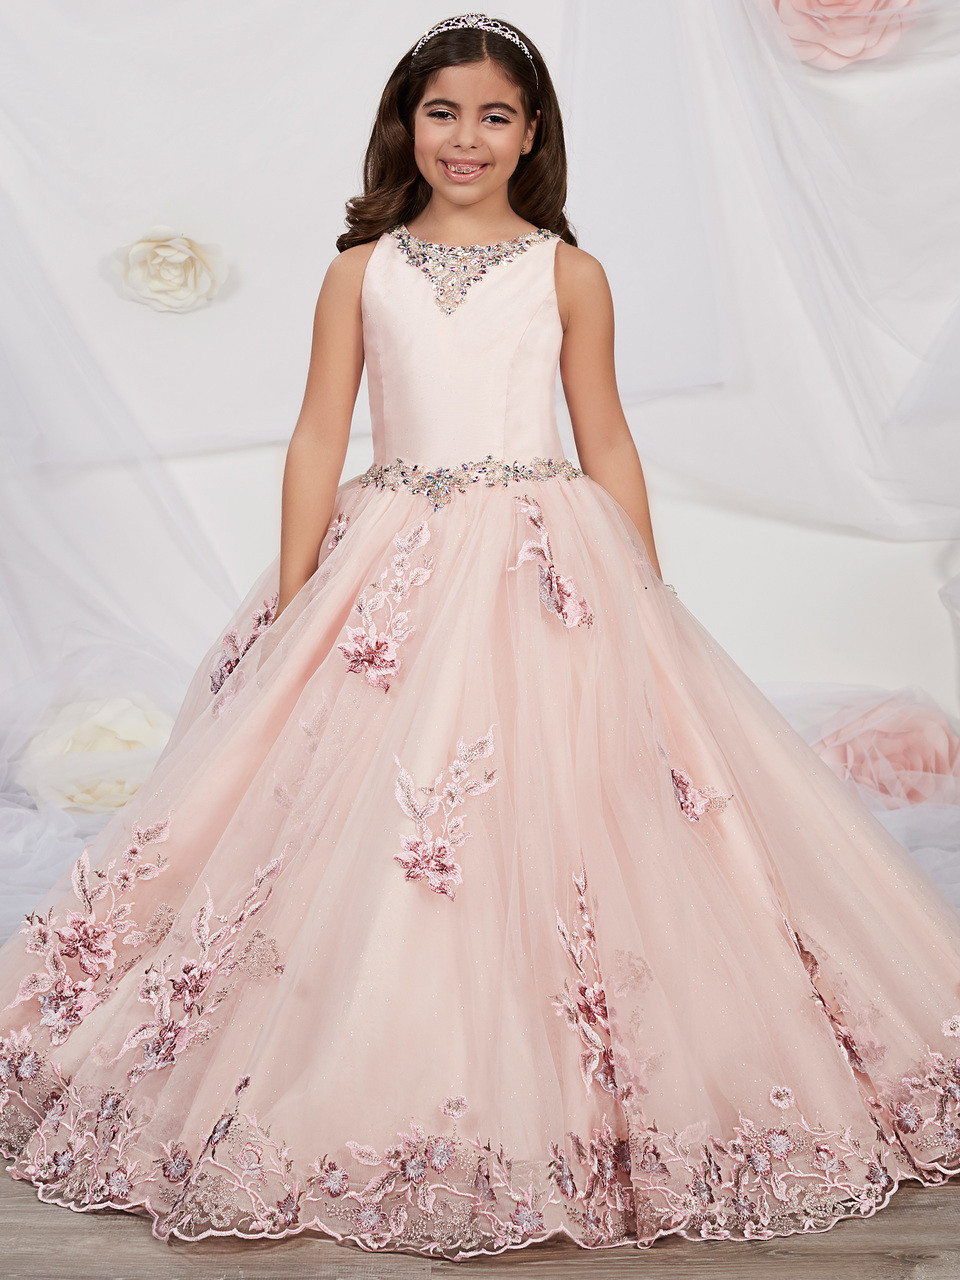 85865215be2 Scoop Neck Tiffany Princess Ball Gown Dress 13542